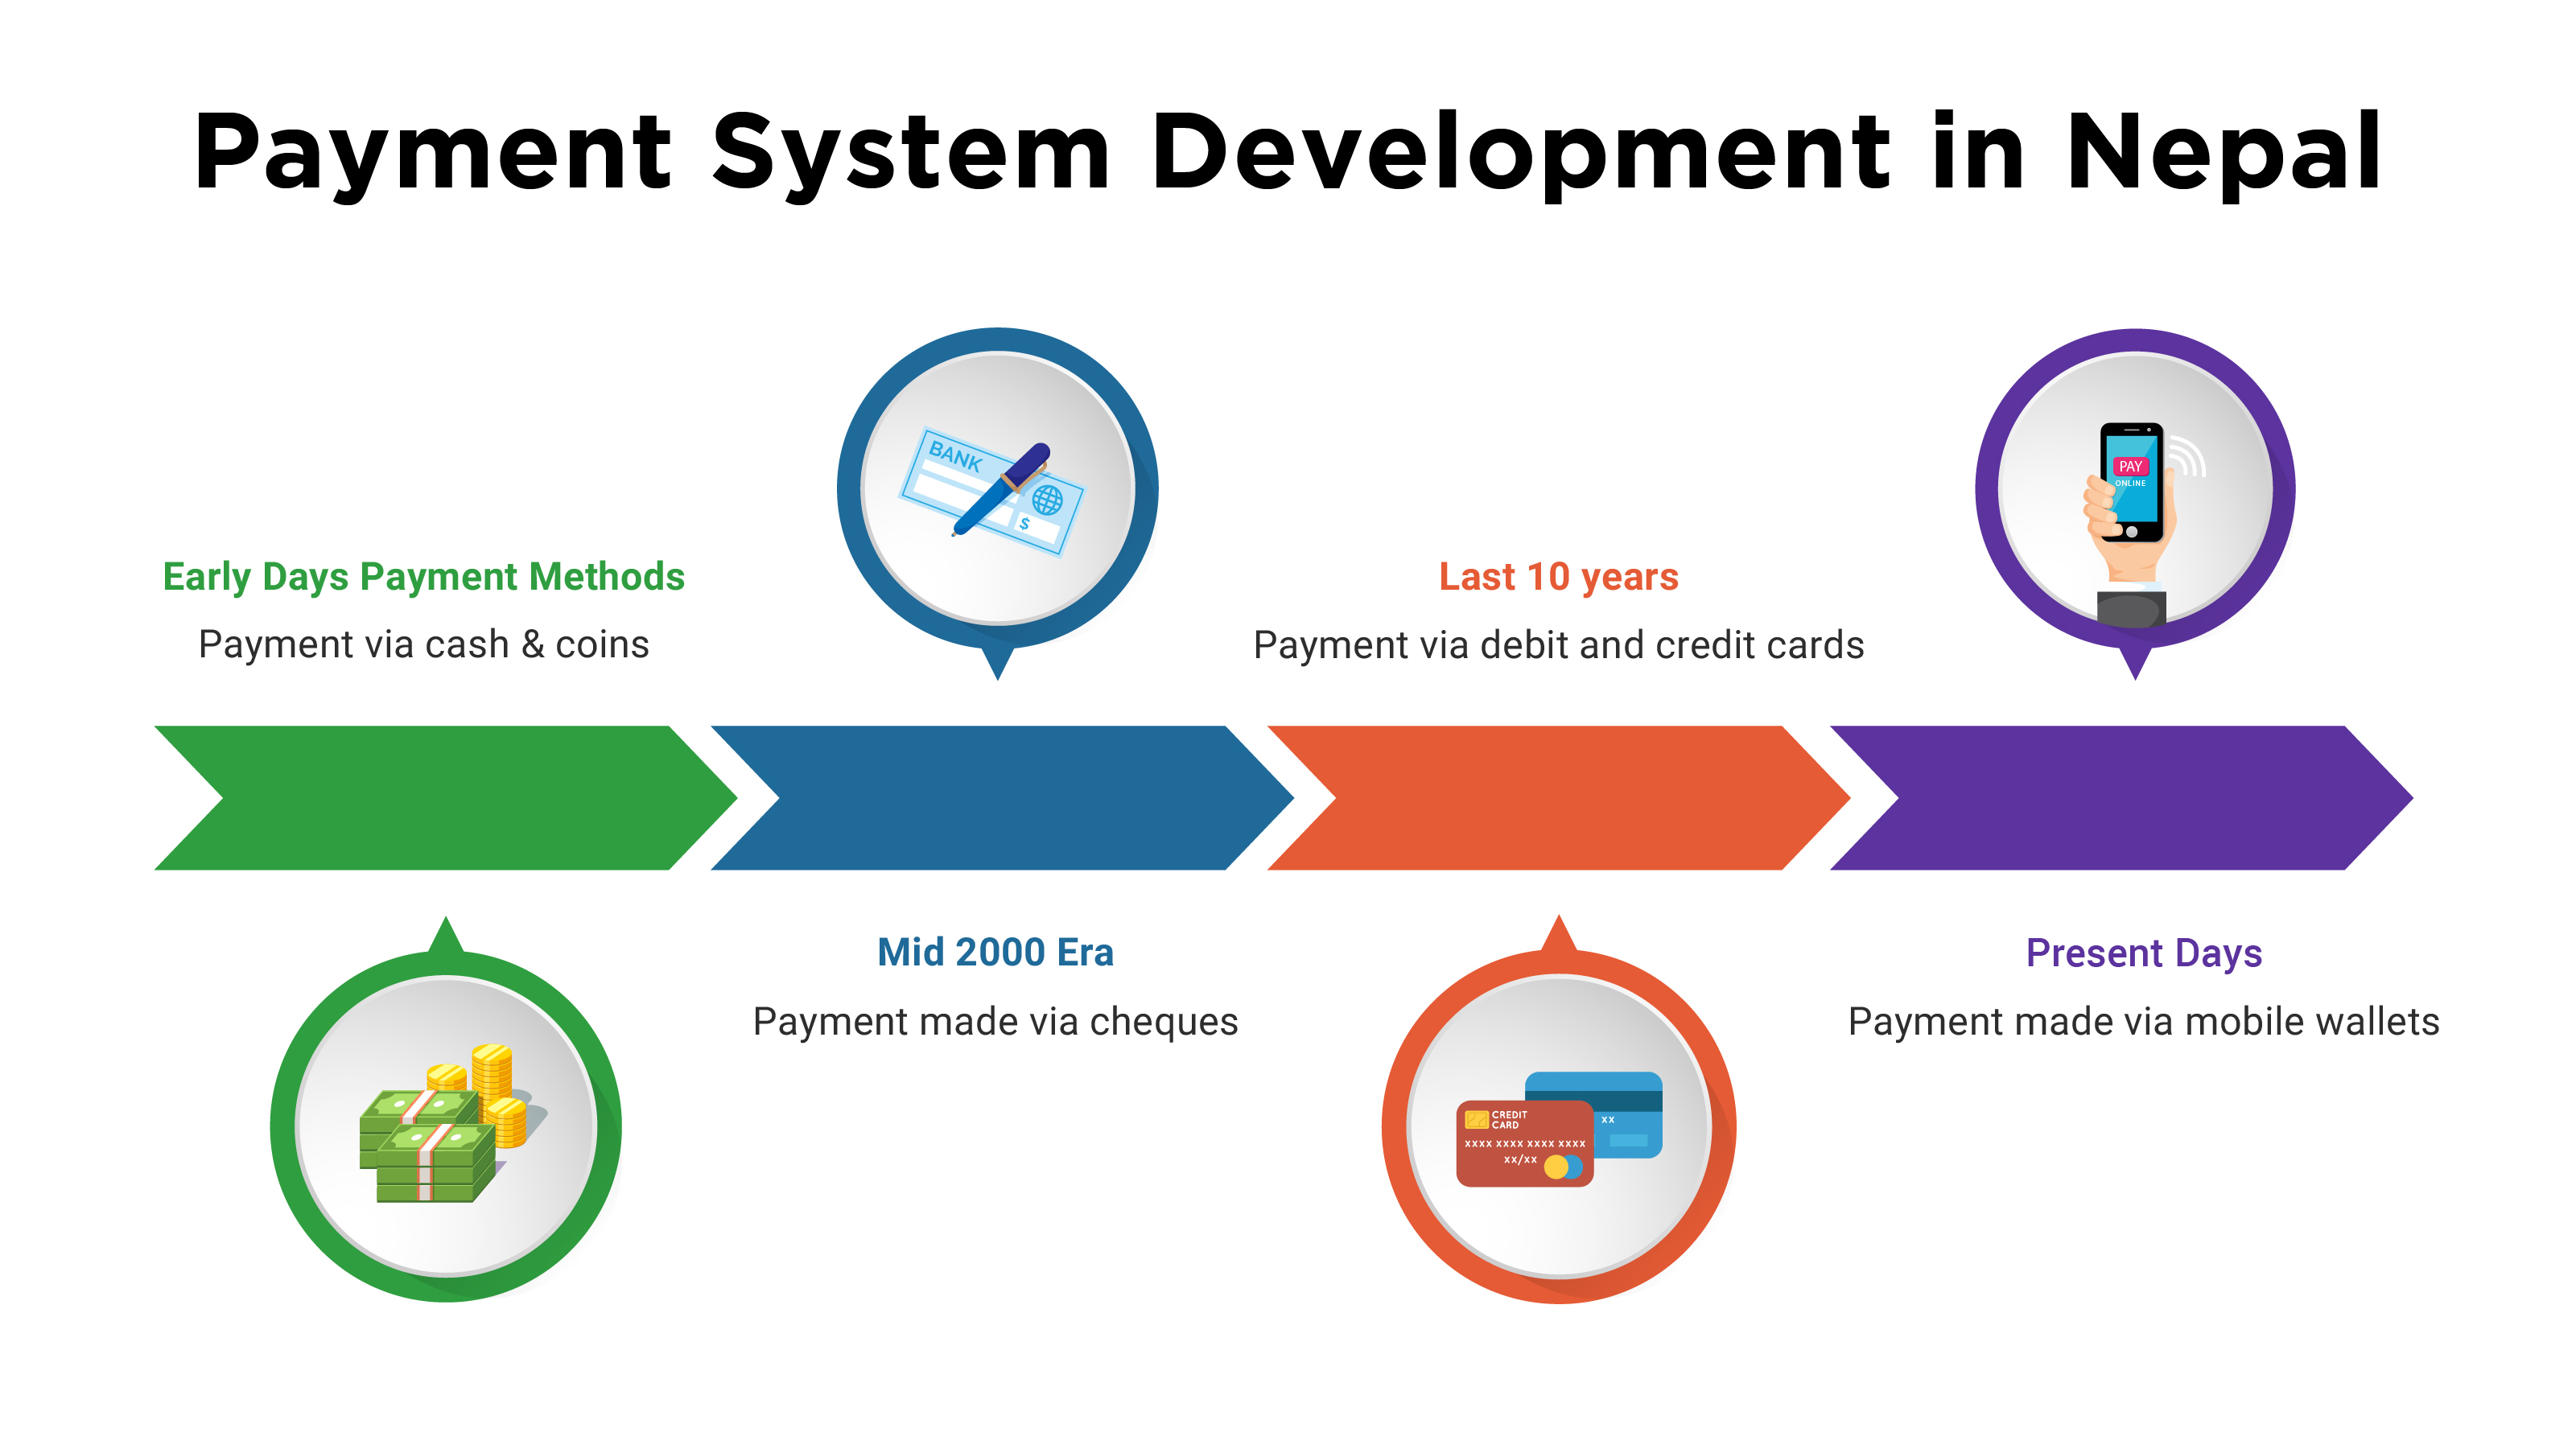 Payments System Development in Nepal